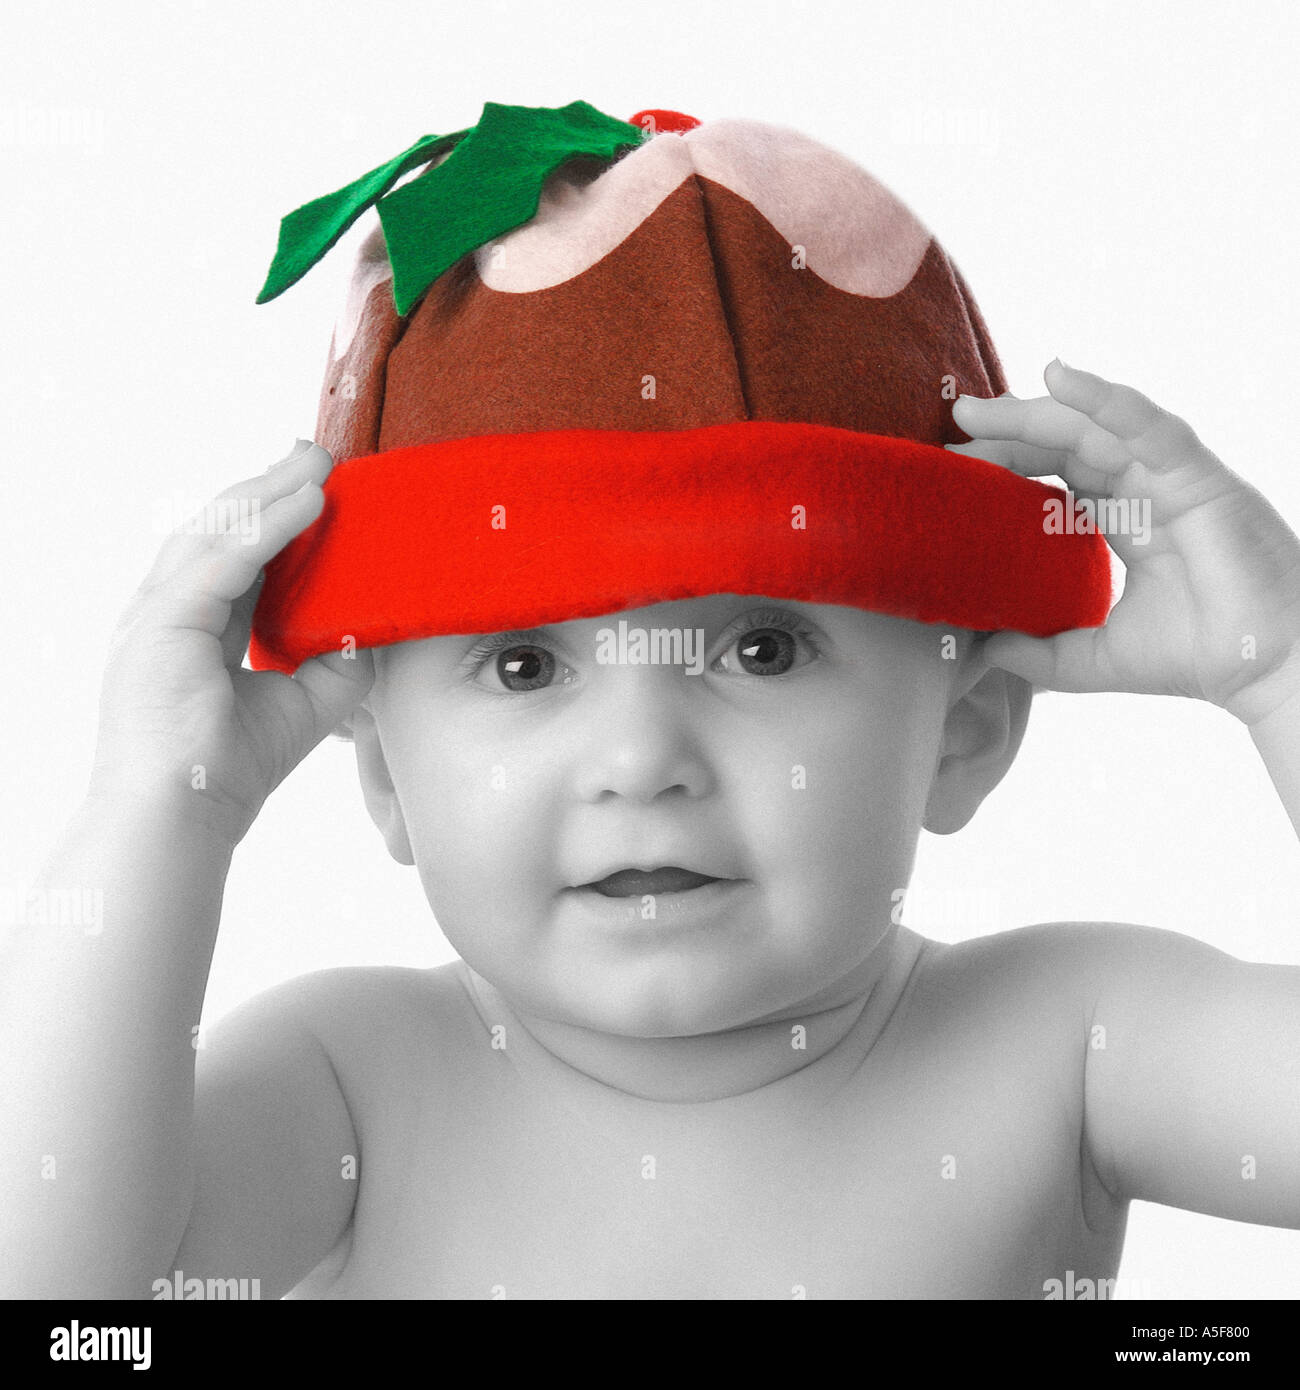 8caee6a0c81 Baby wearing Christmas pudding hat Stock Photo  391168 - Alamy